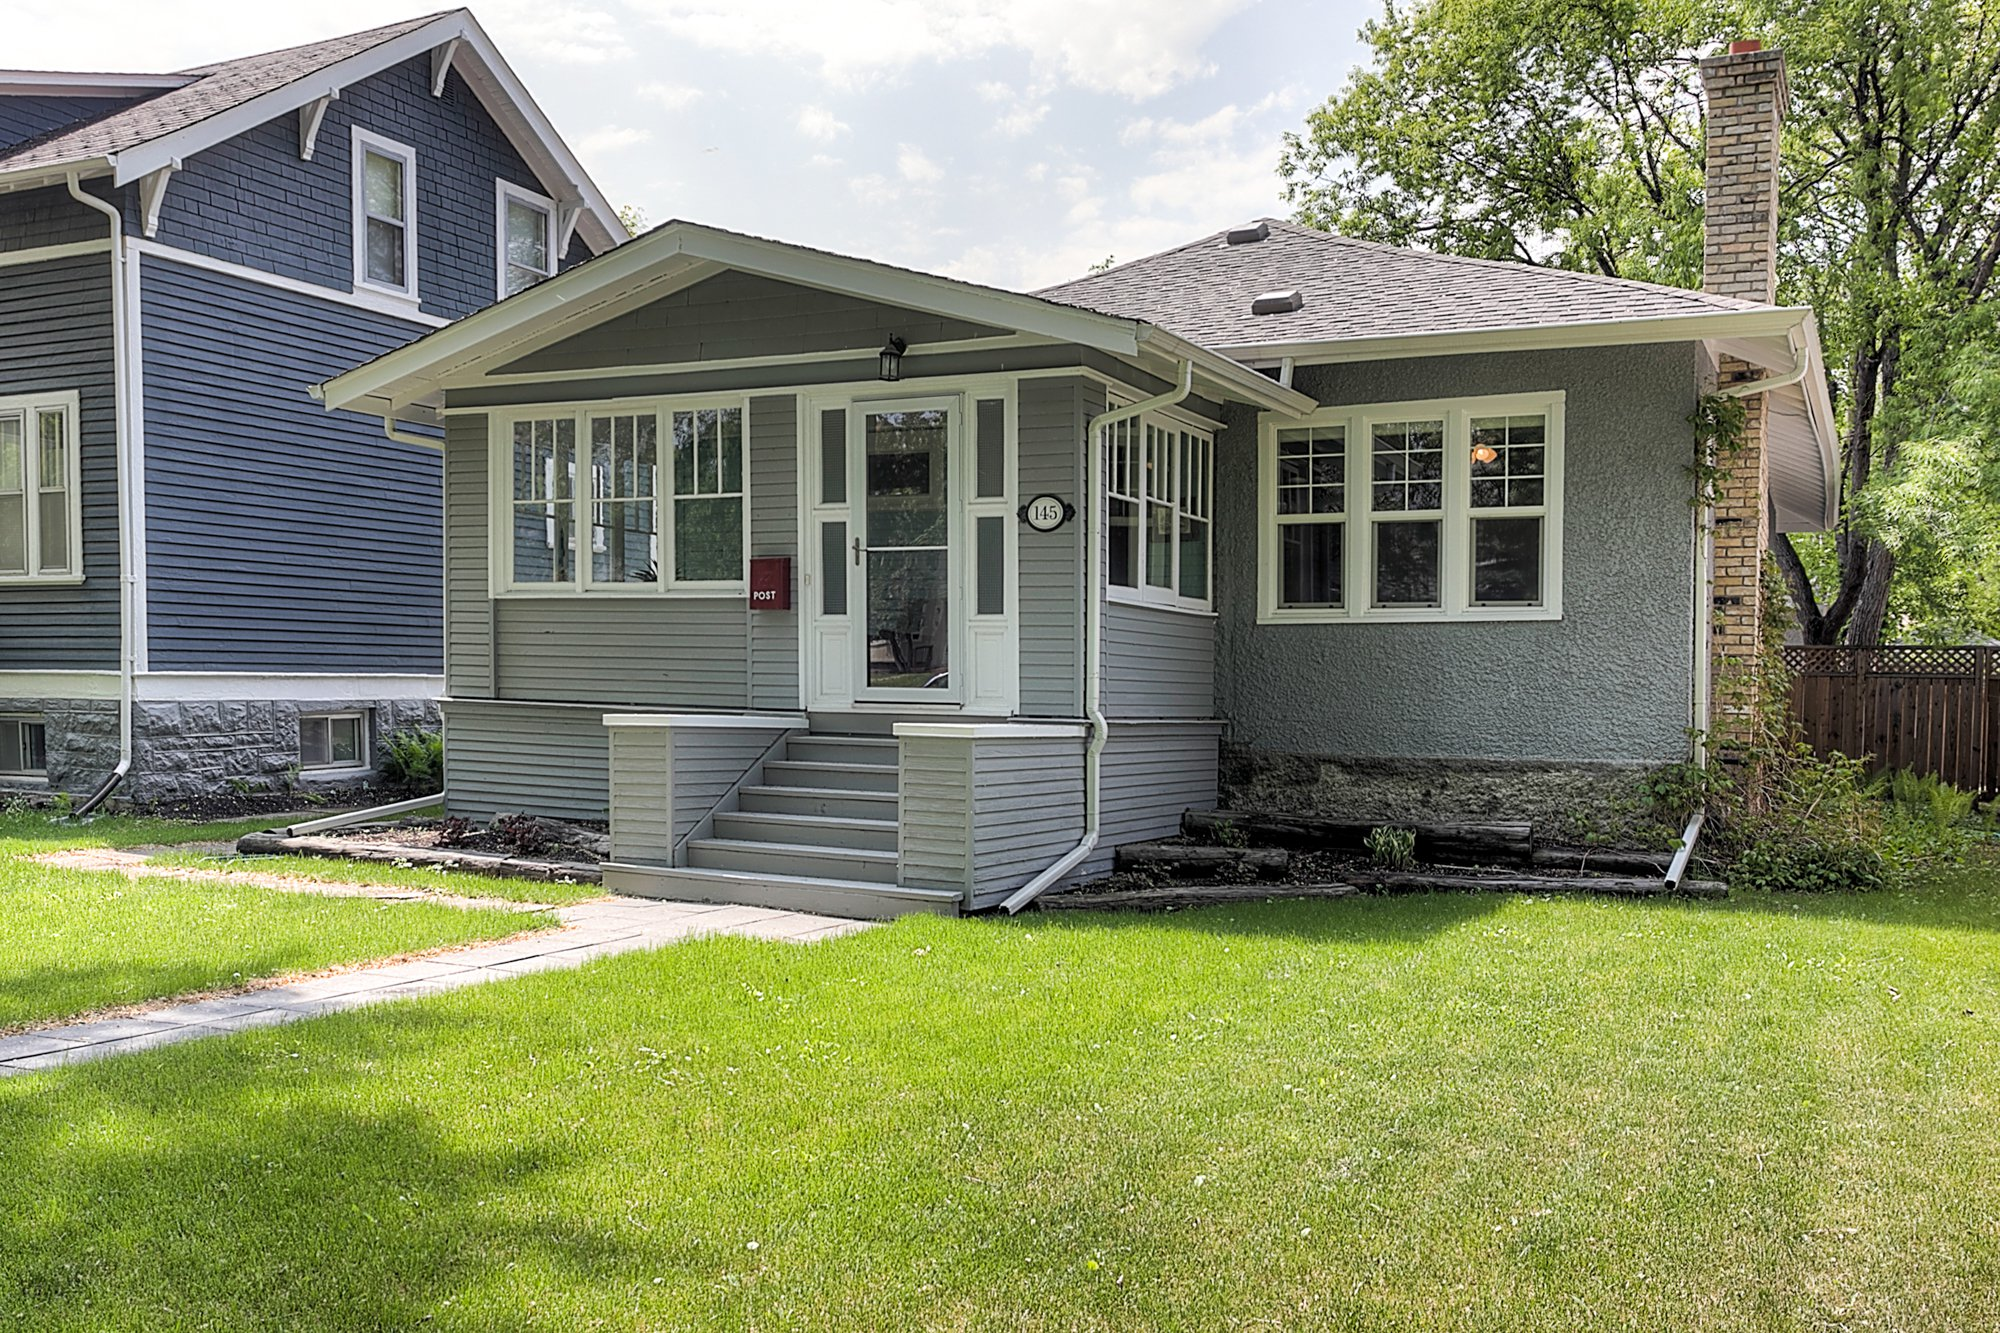 Main Photo: 145 Campbell Street in Winnipeg: River Heights North Single Family Detached for sale (1C)  : MLS®# 1923580